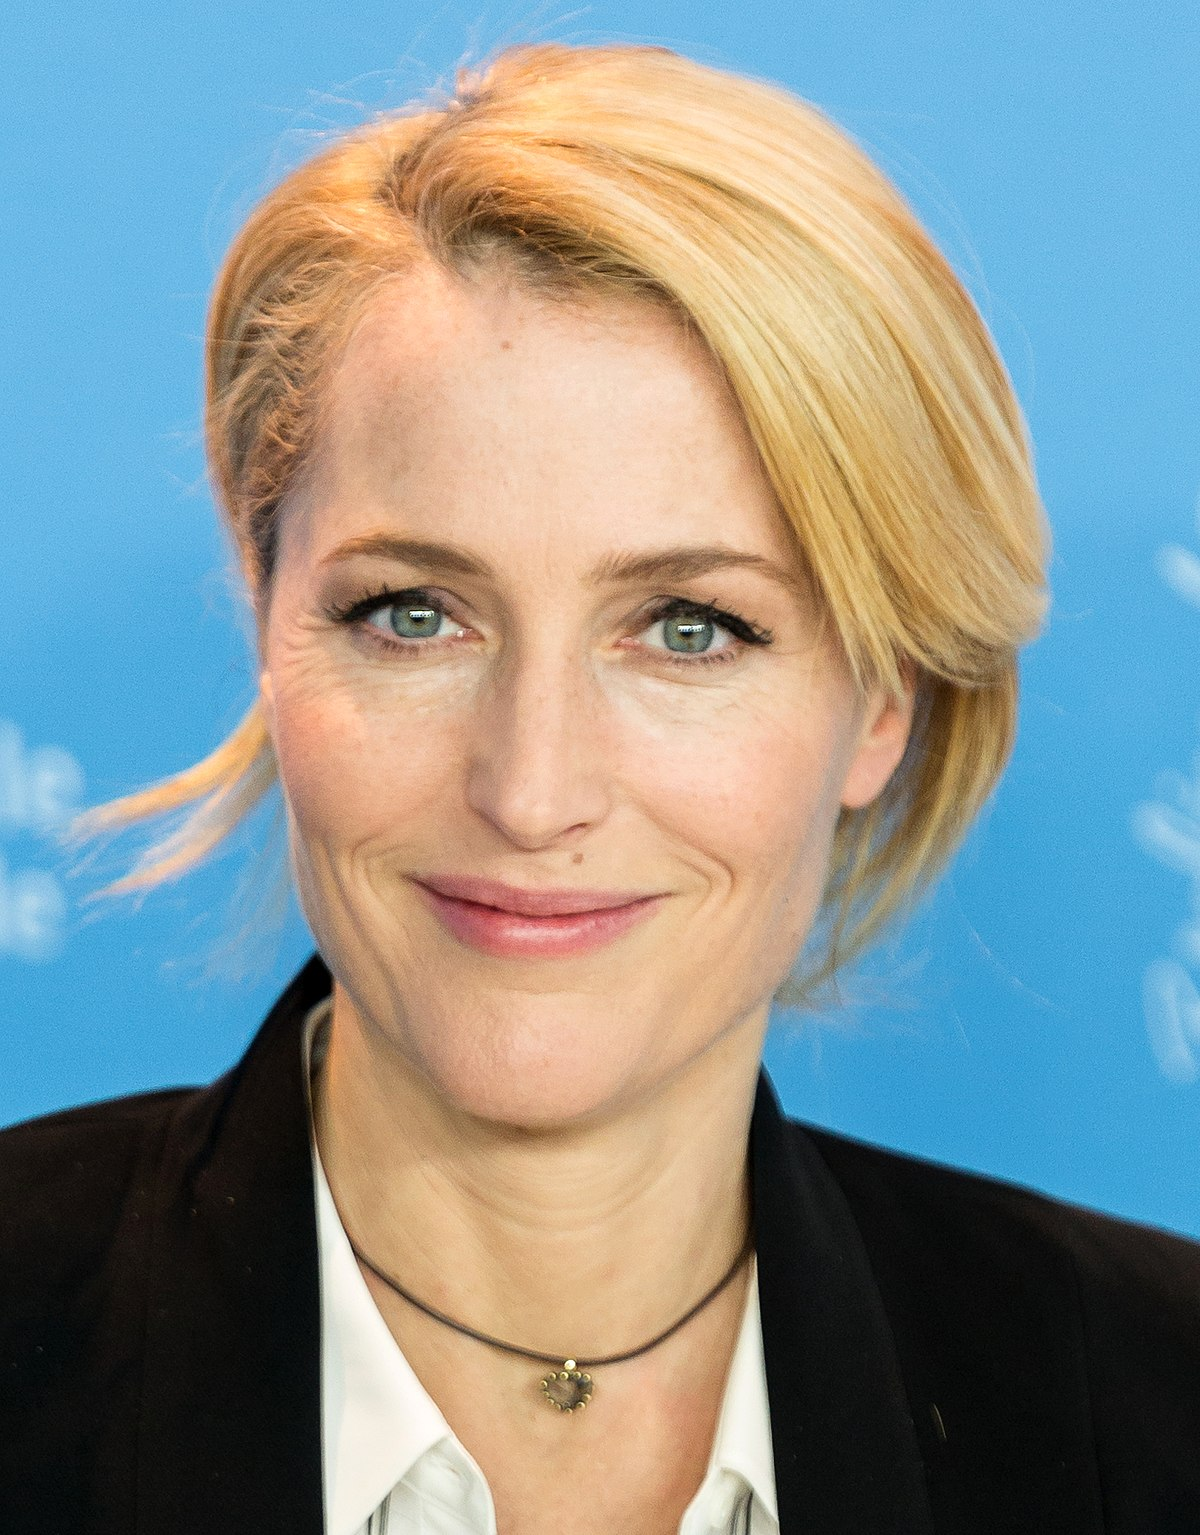 Gillian Anderson born August 9, 1968 (age 50)